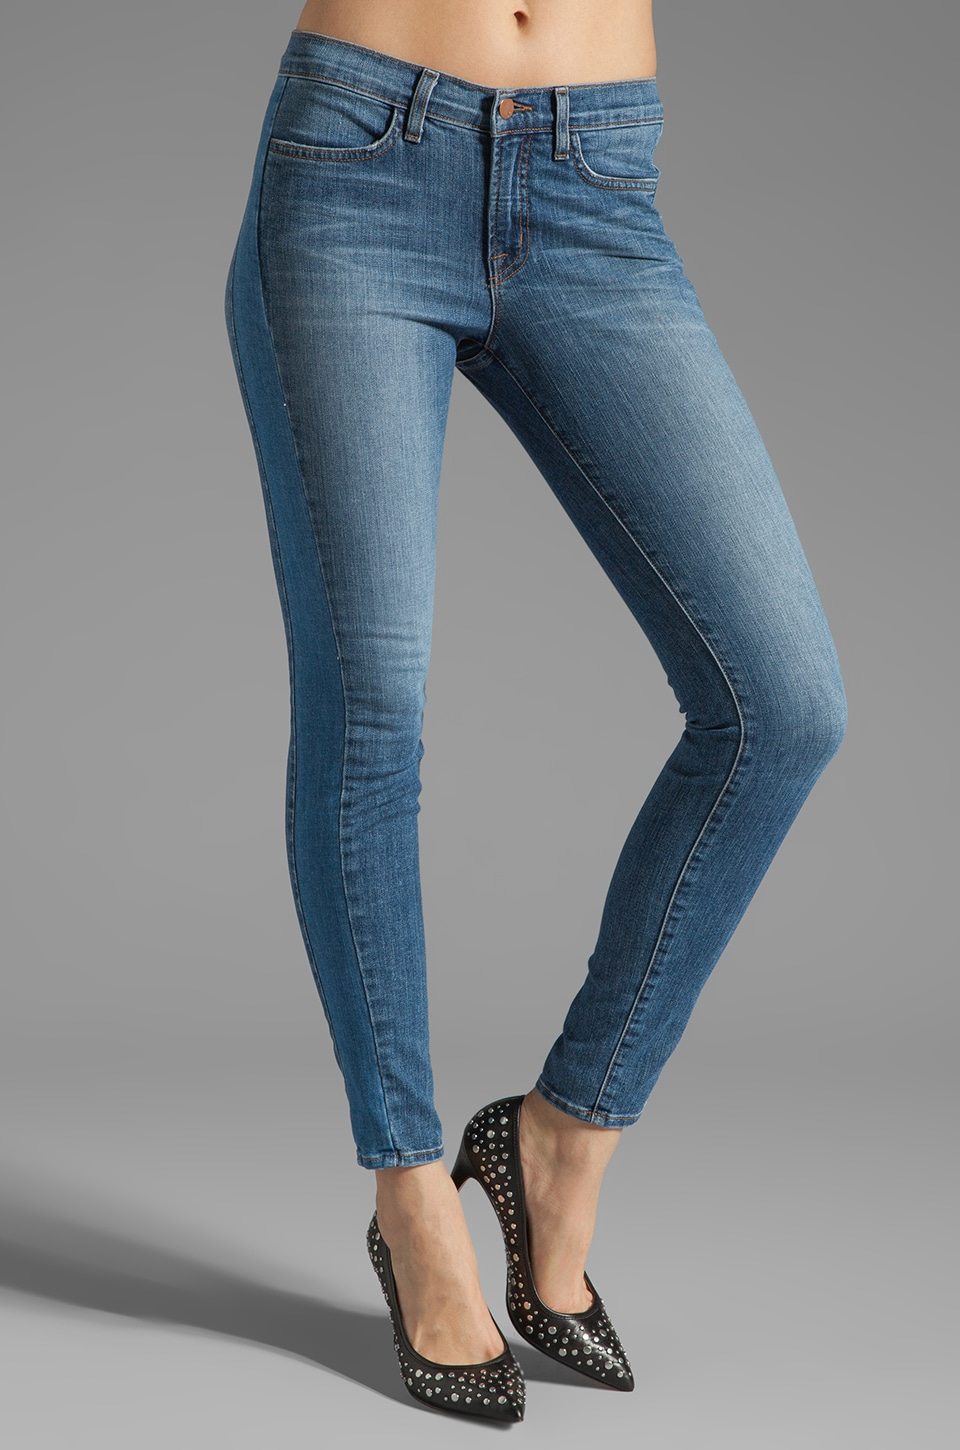 J Brand The Cass Mid Rise Skinny in Bliss